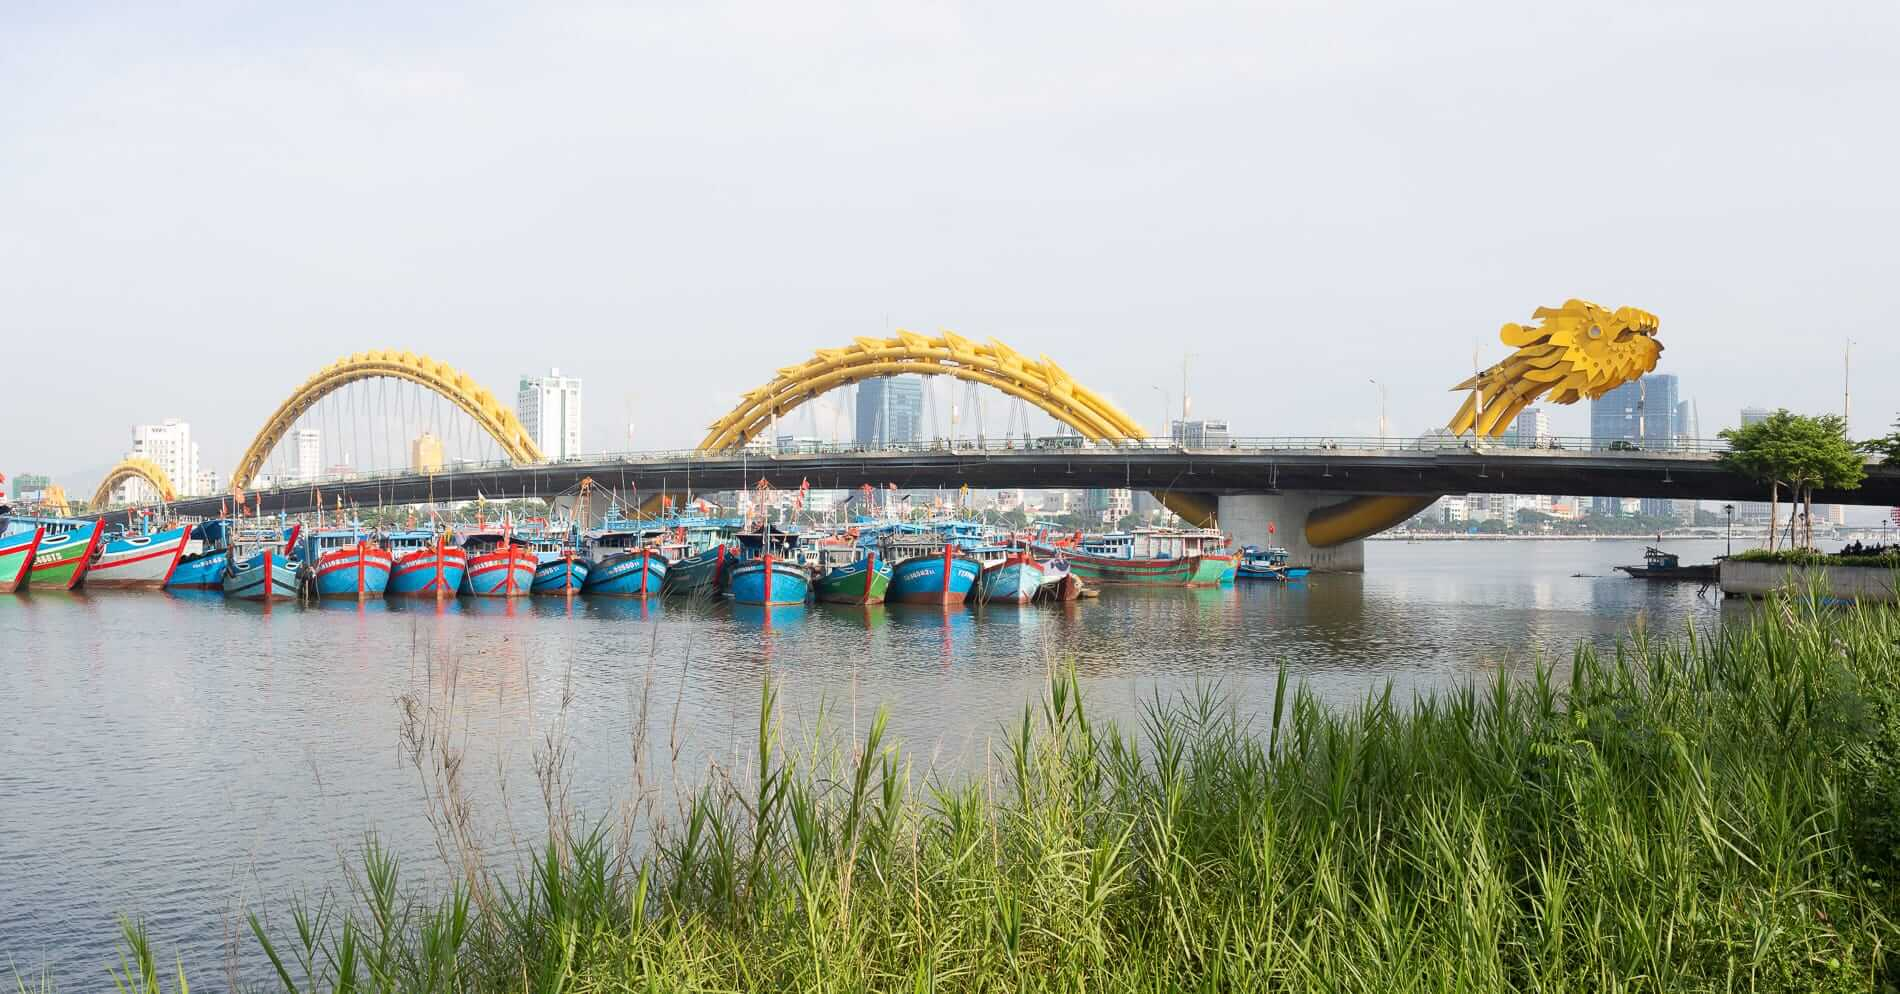 The Dragong Bridge in Da Nang